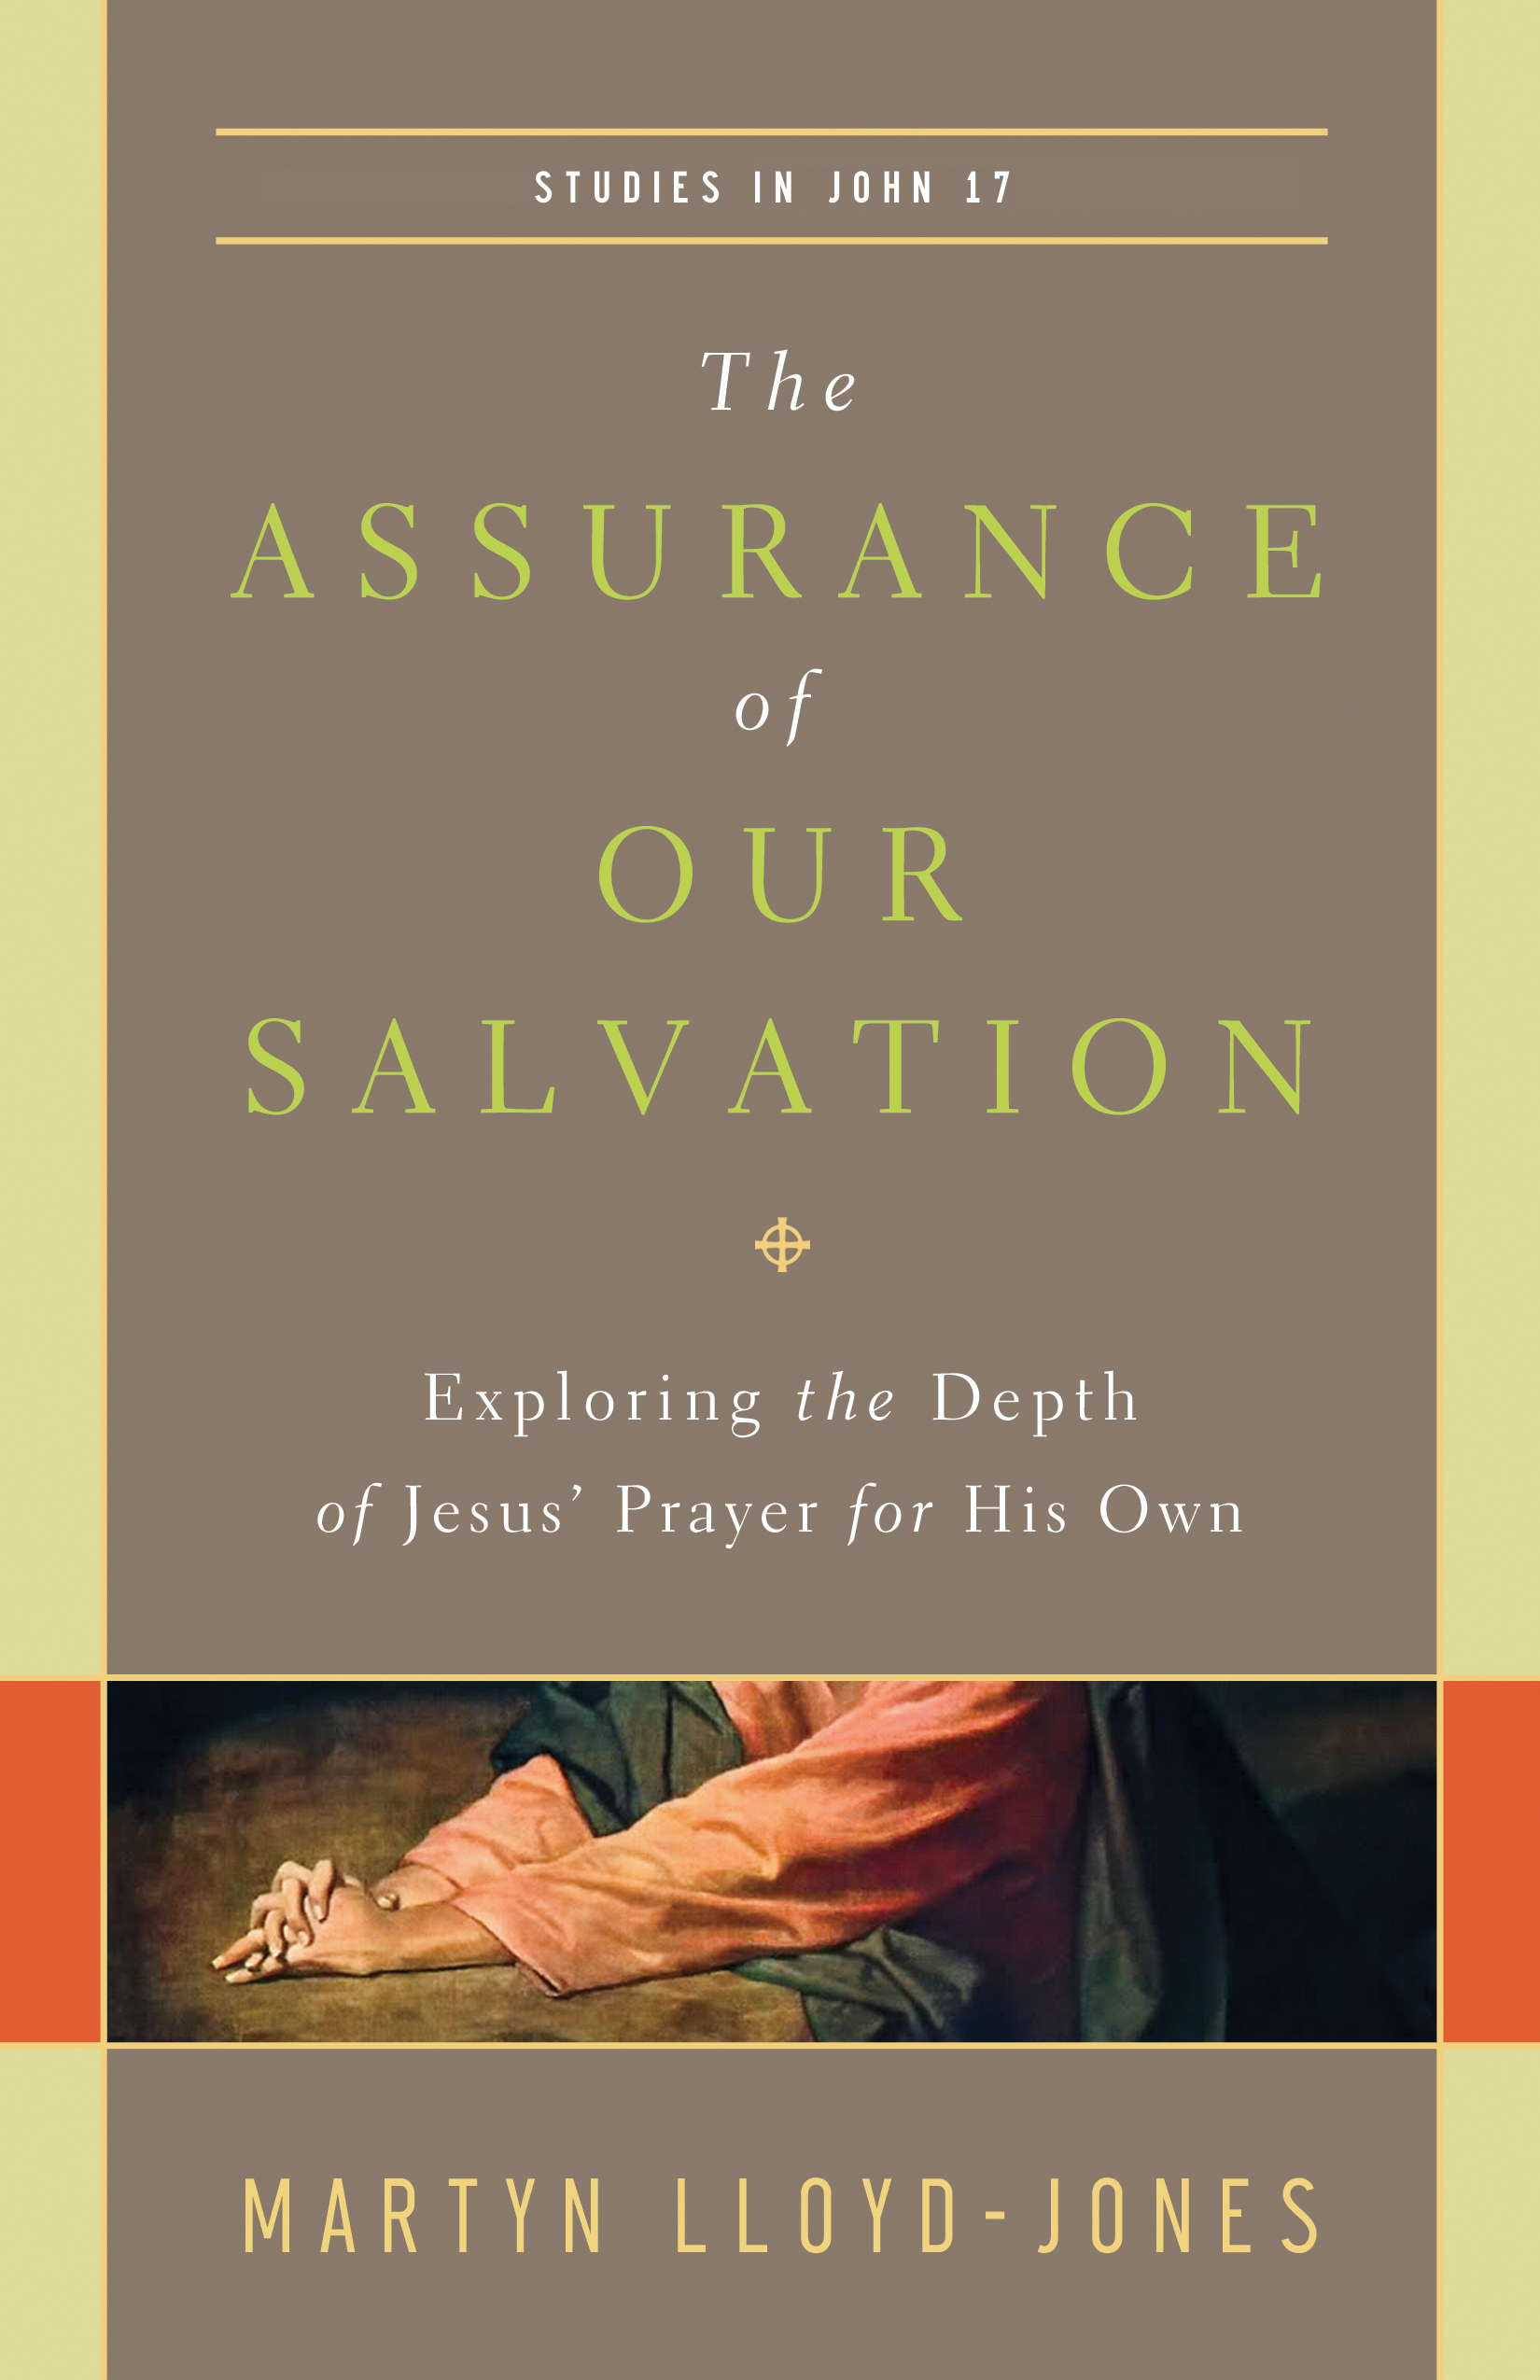 The Assurance of Our Salvation (Studies in John 17) Exploring the Depth of Jesus' Prayer for His Own